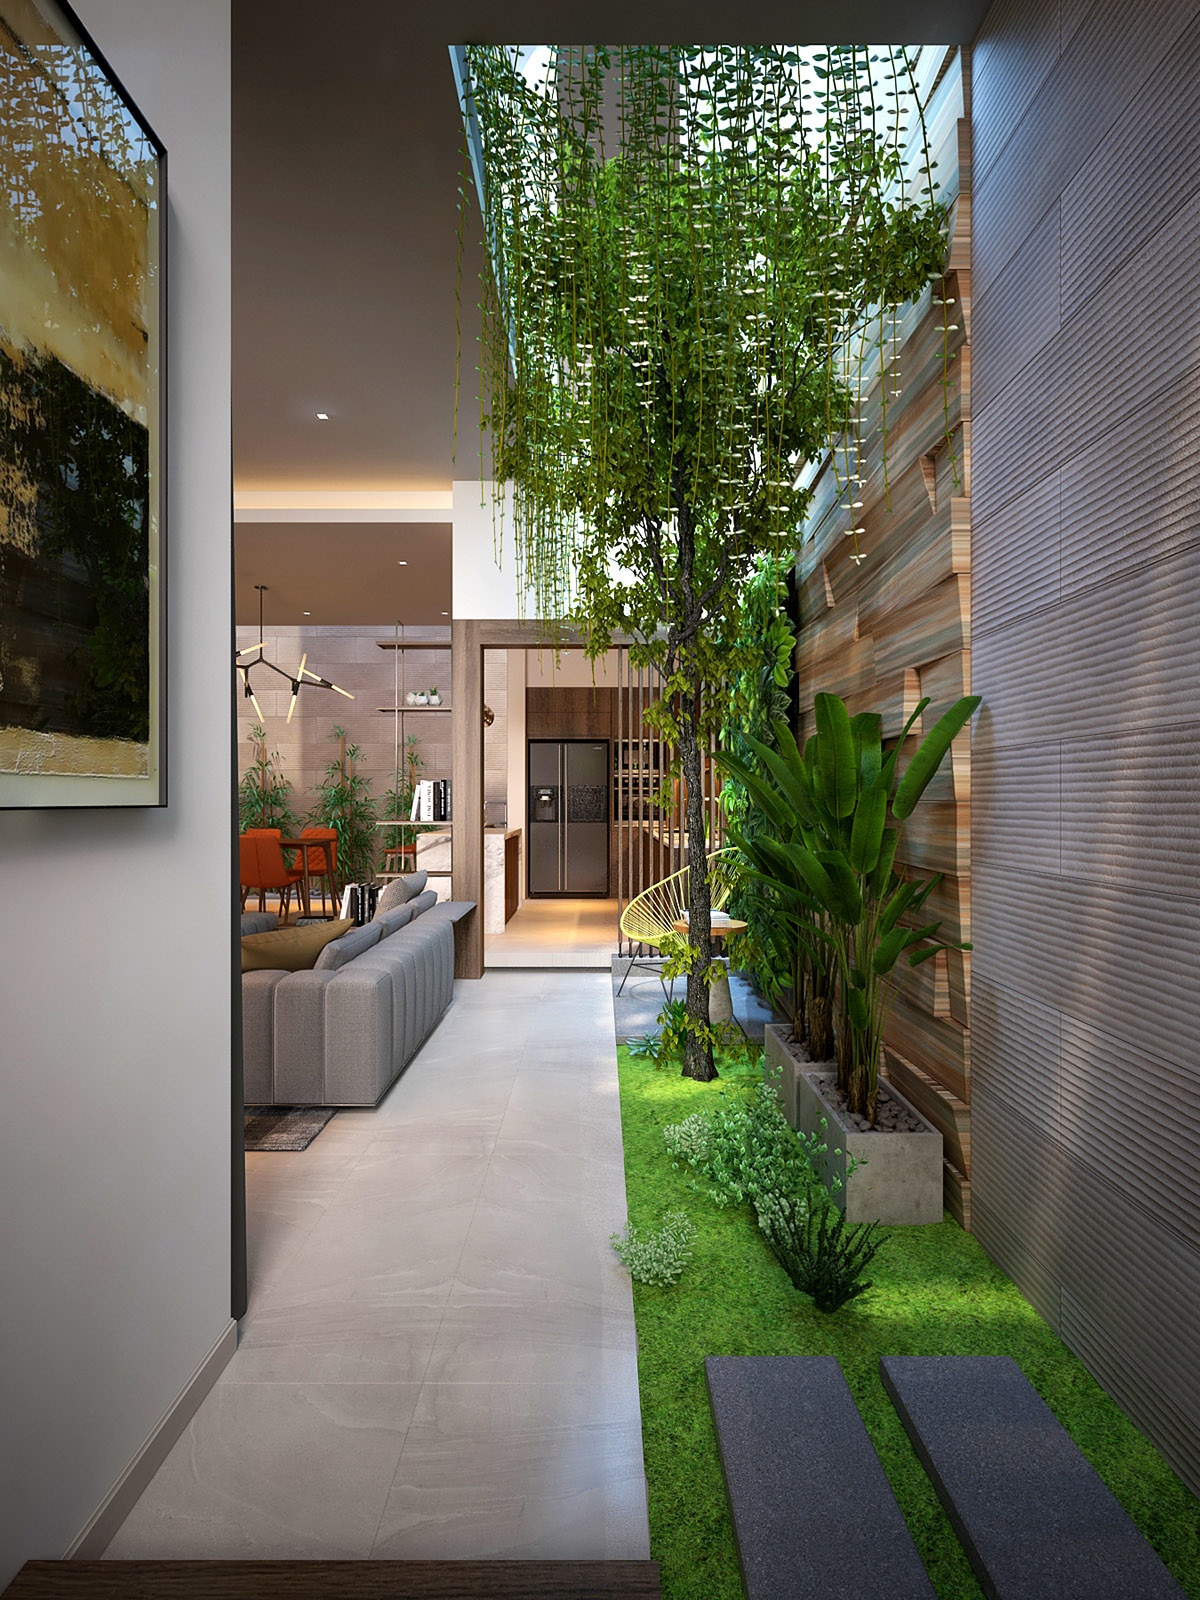 10 Homes That Feature Green Spaces Inside, With Courtyards & Terrariums